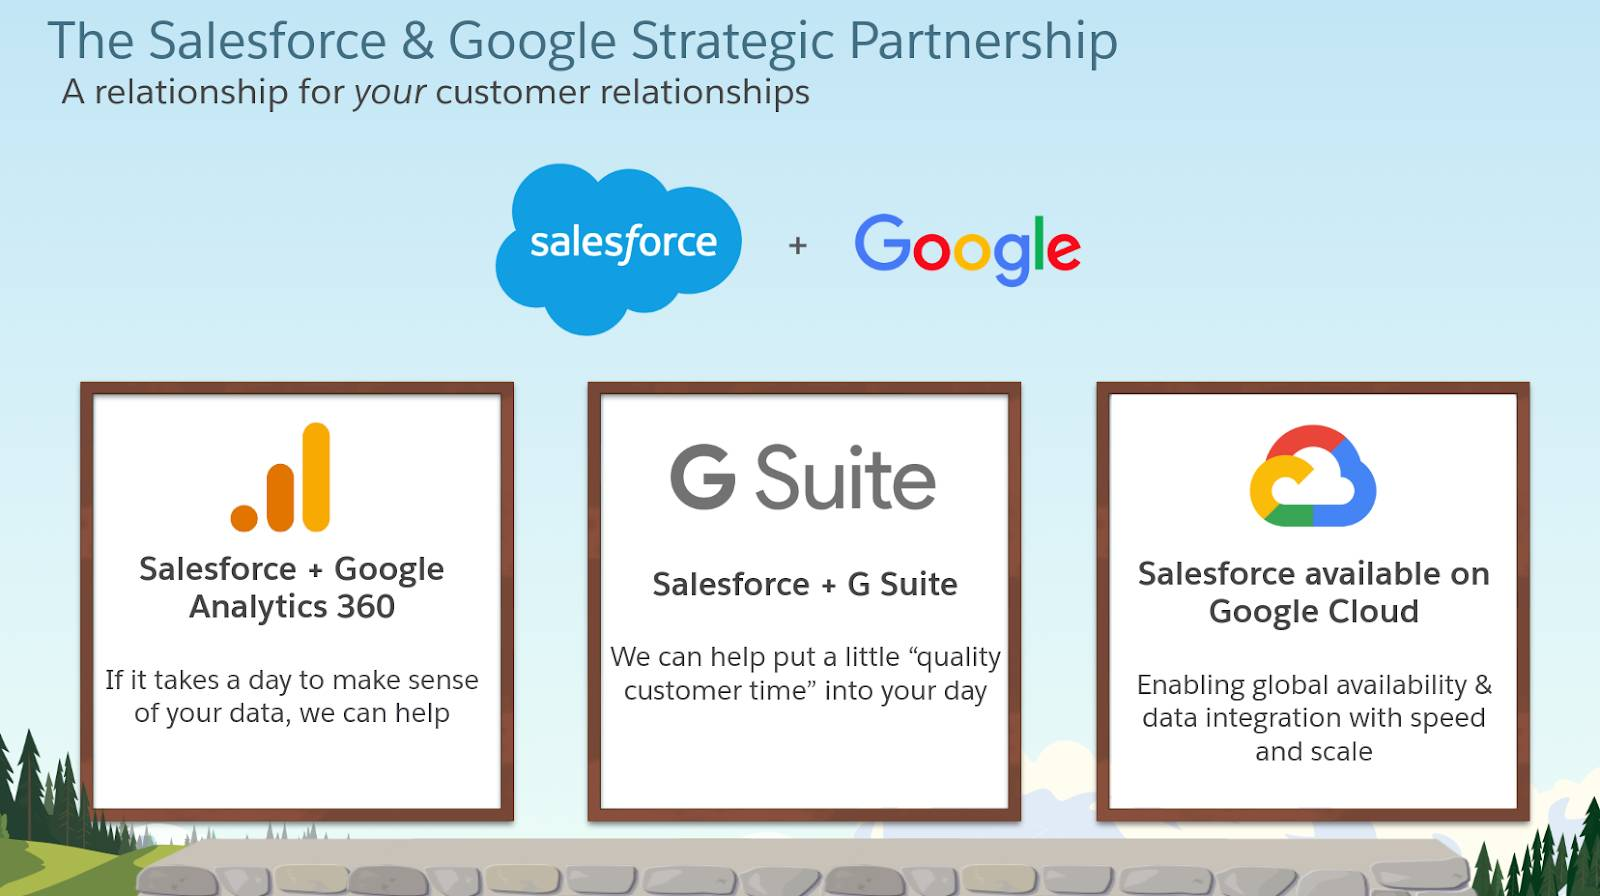 The Salesforce and Google Strategic Partnership is focused on the integration with the Google Marketing Platform, G Suite, availability on Google Cloud, and enabling you to better know your customer.